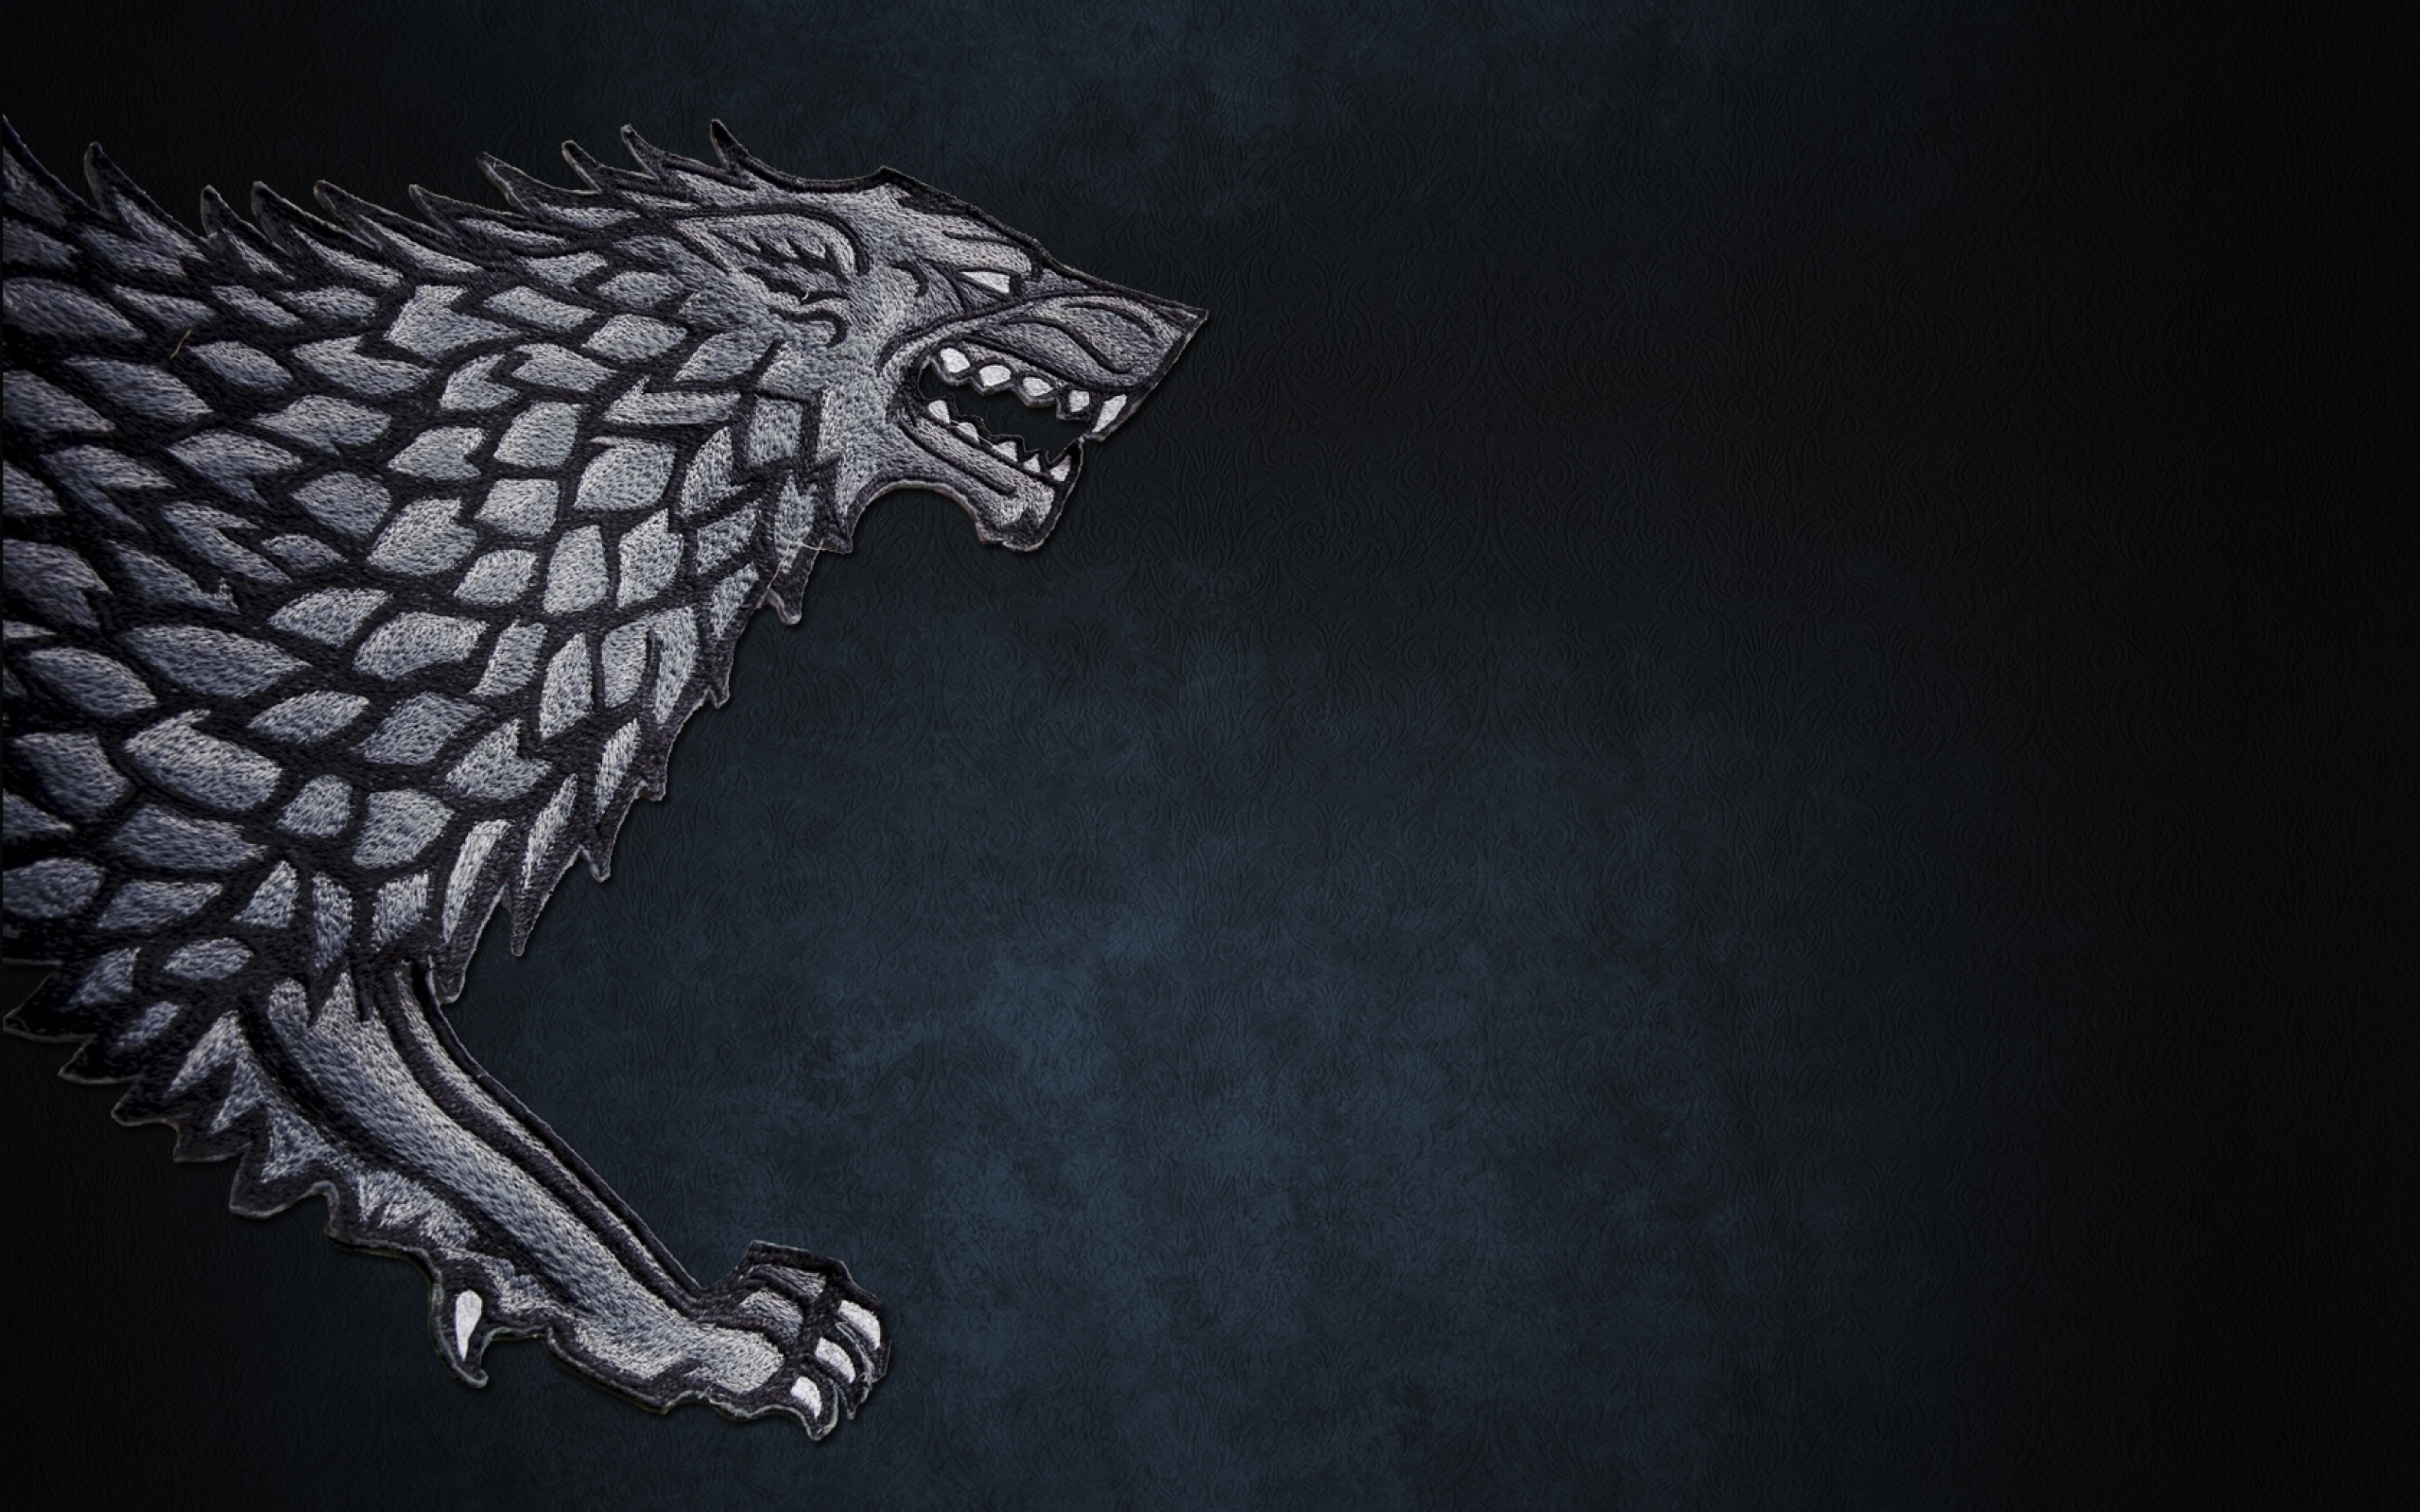 Free Download Iron Wolf From Game Of Thrones Wallpapers And Images